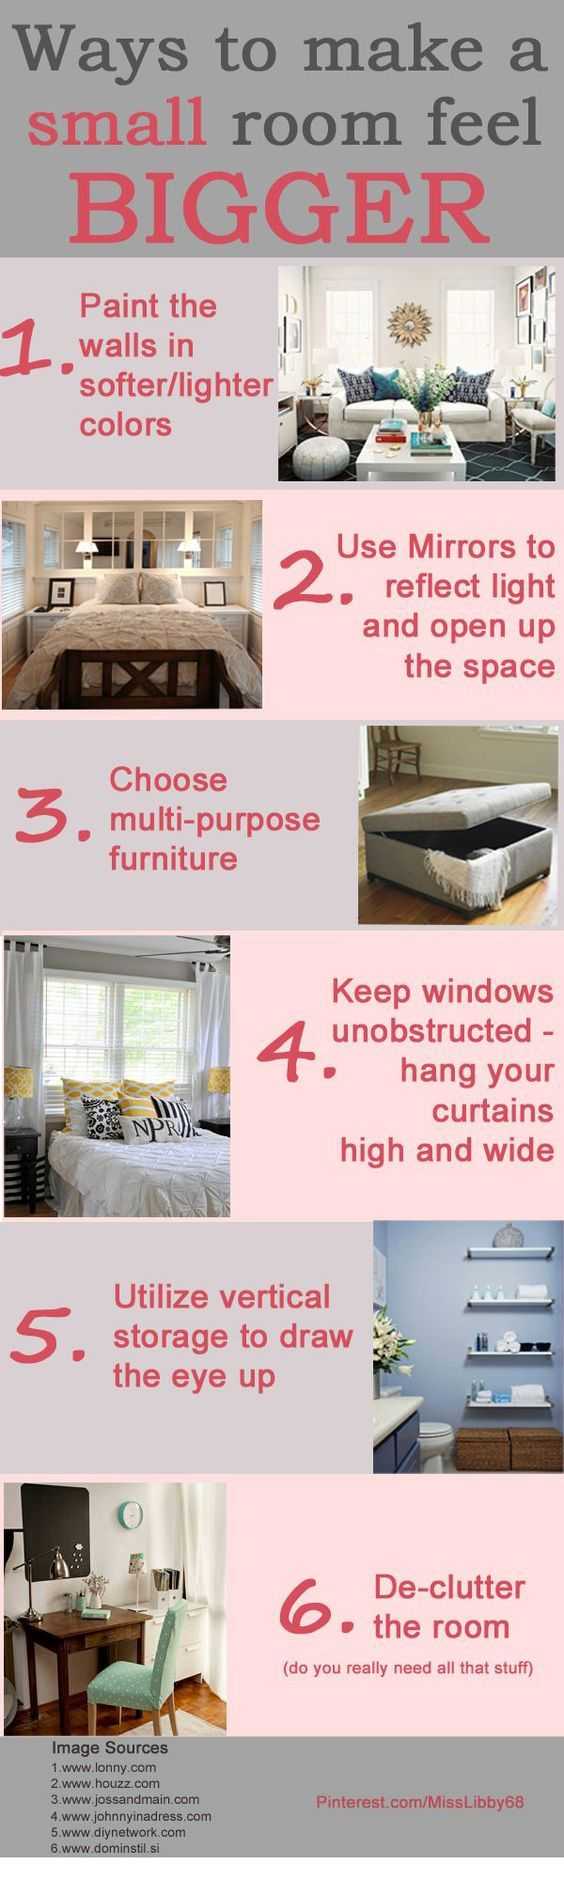 Space For Small Bedrooms 17 Best Ideas About Small Bedroom Organization On Pinterest